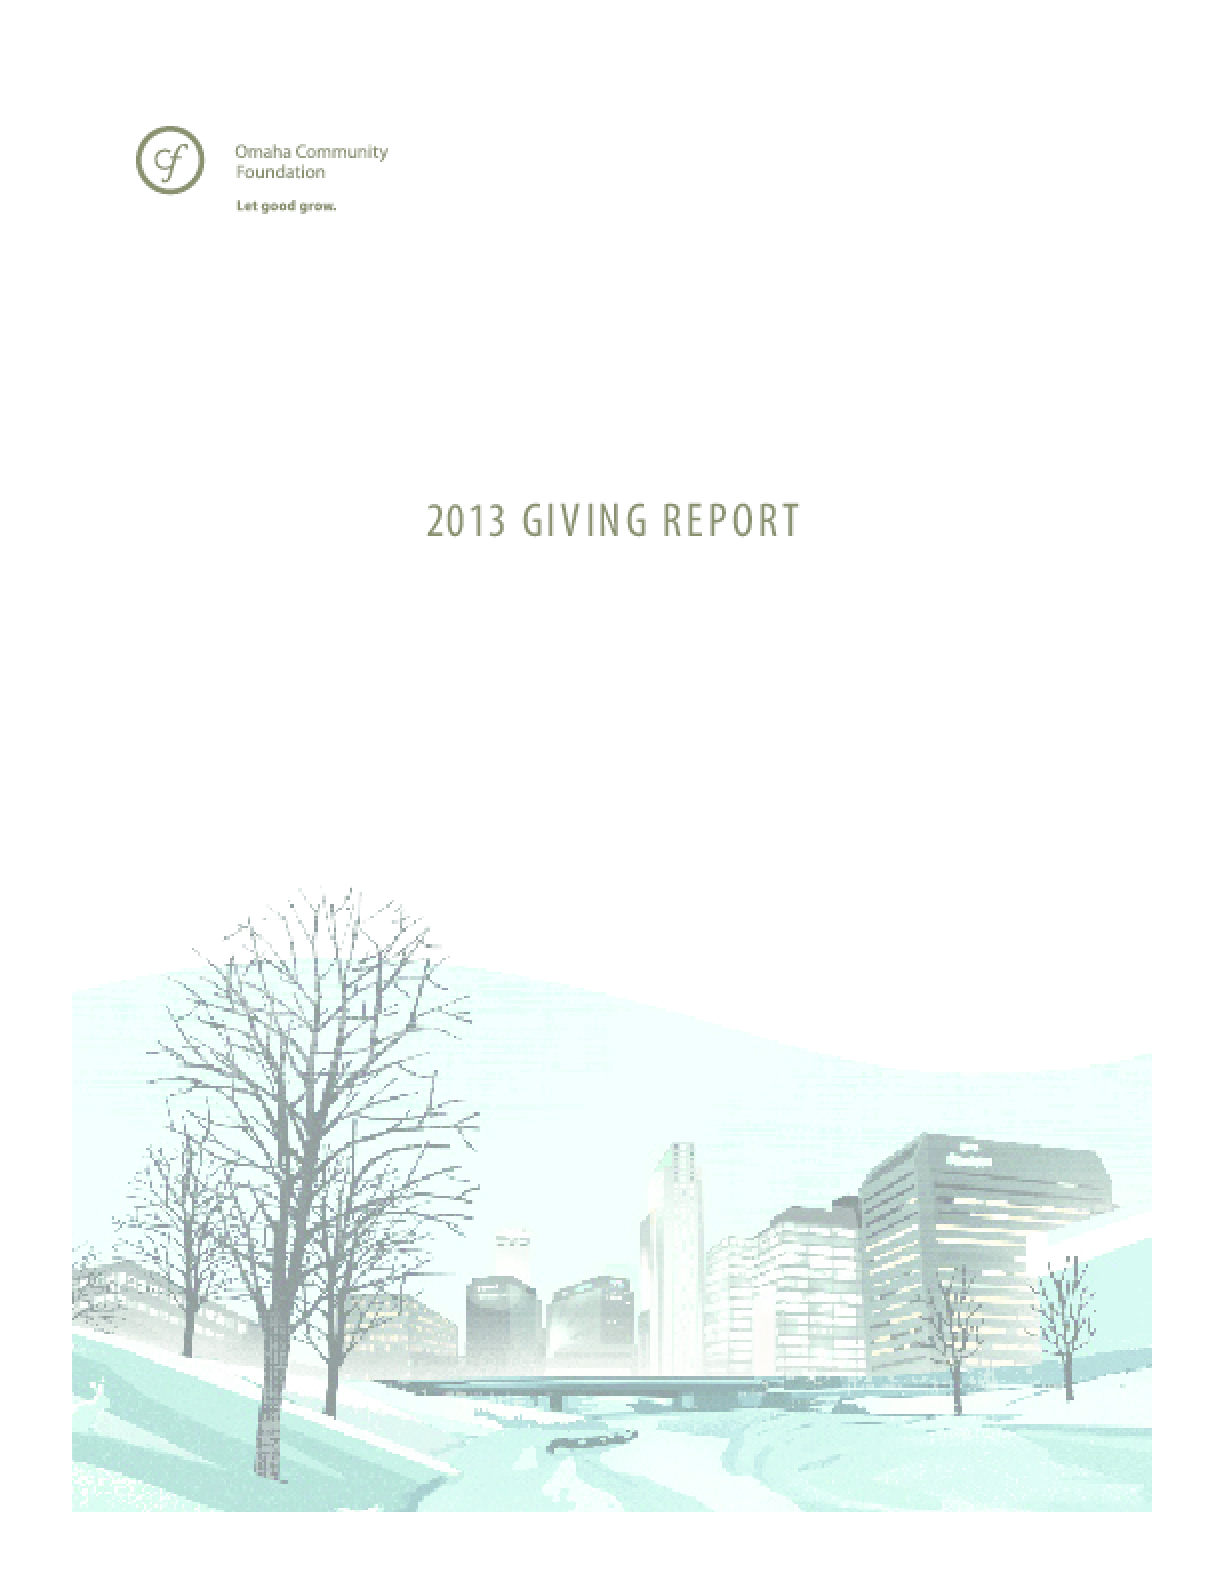 Omaha Community Foundation: 2013 Giving Report